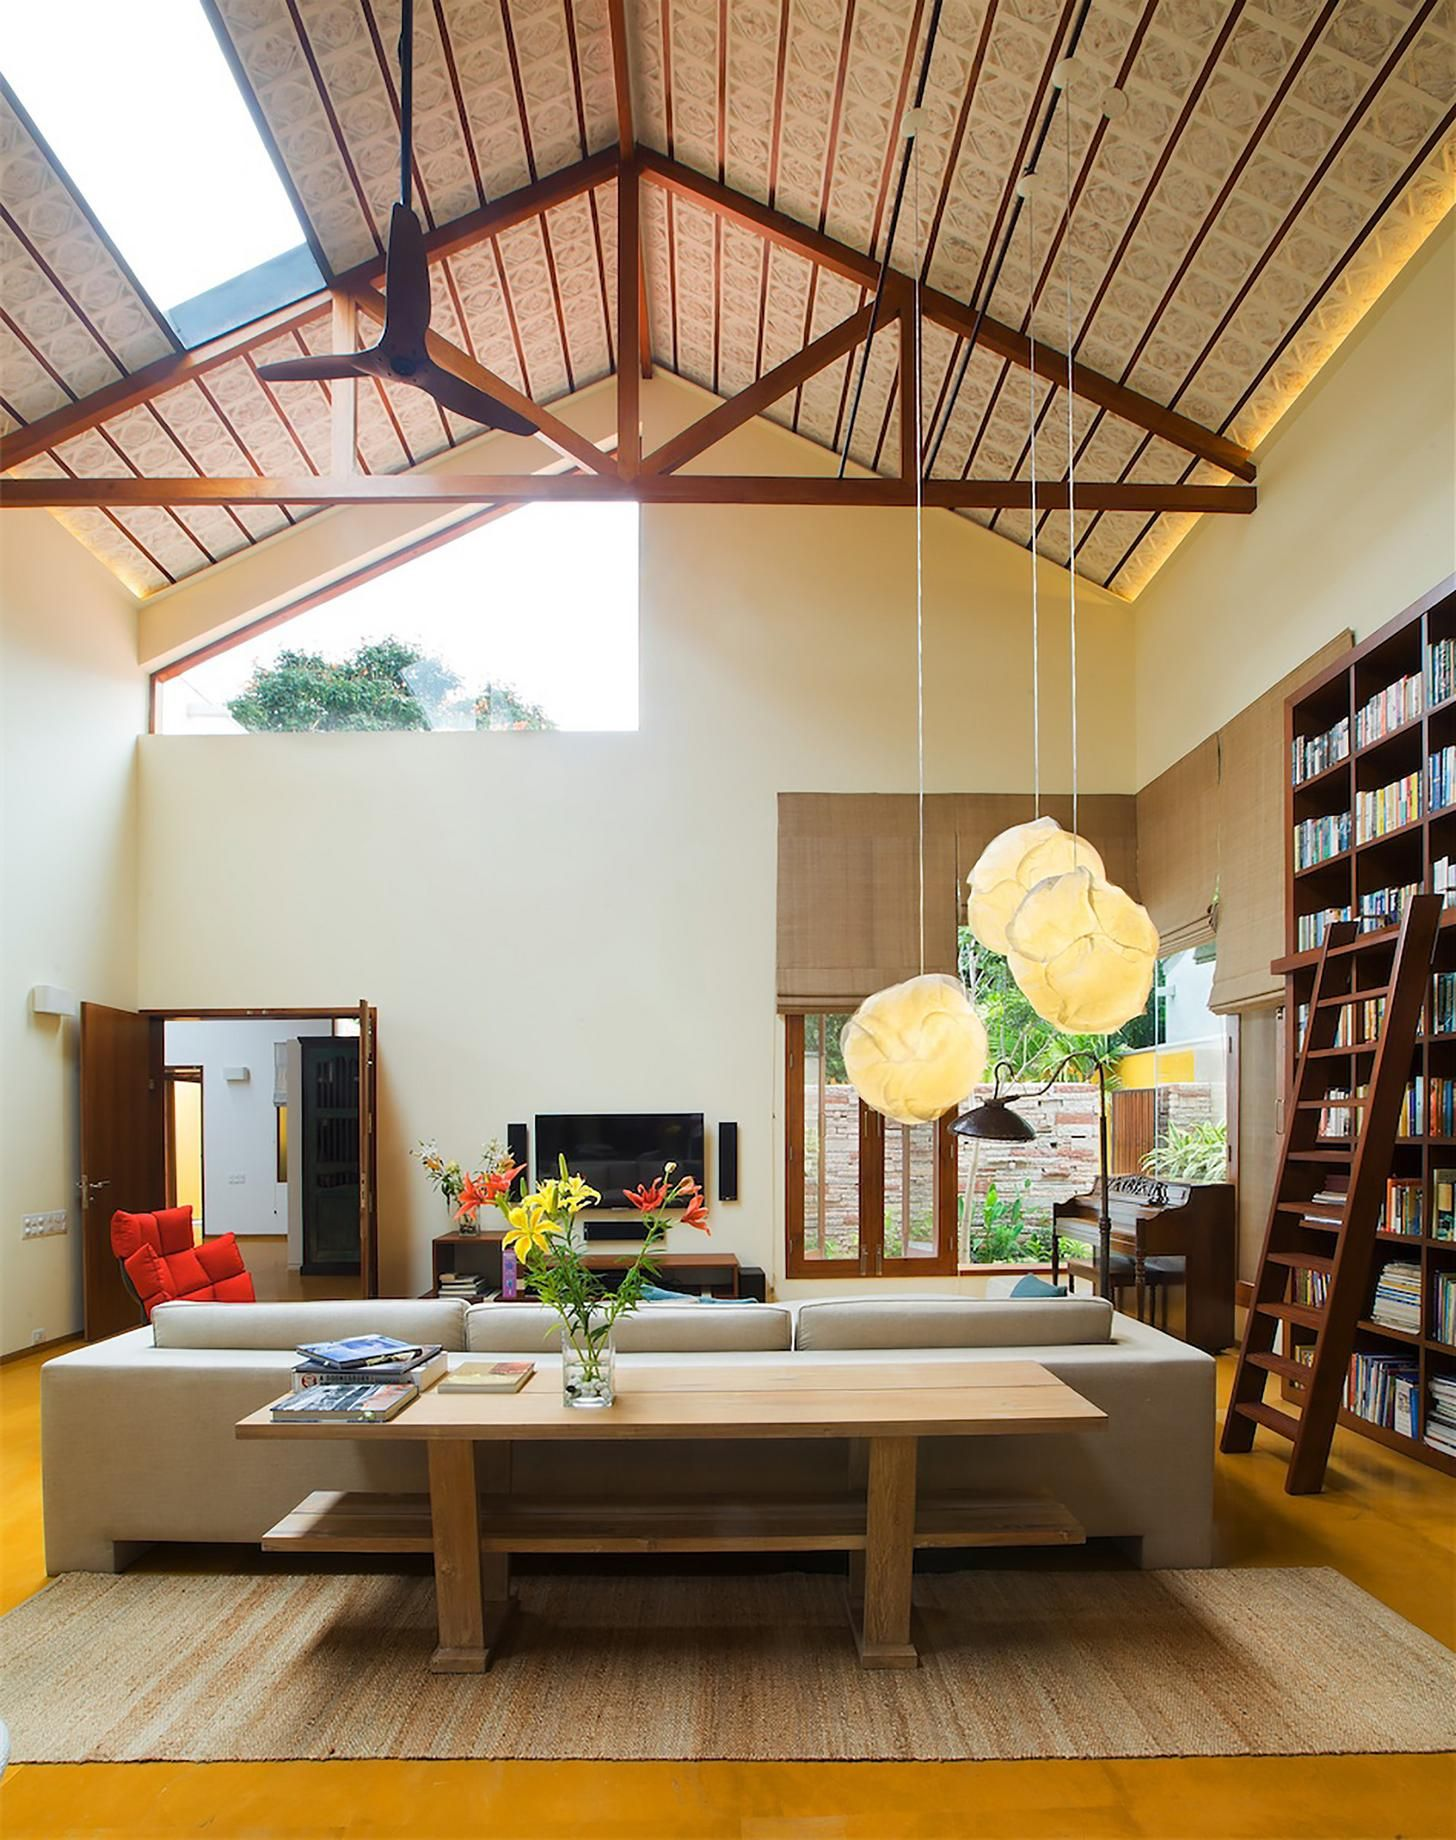 Brightly Lit Living Room Under A Vaulted Ceiling With A Bookshelf Wall, Bangalore, Karnataka